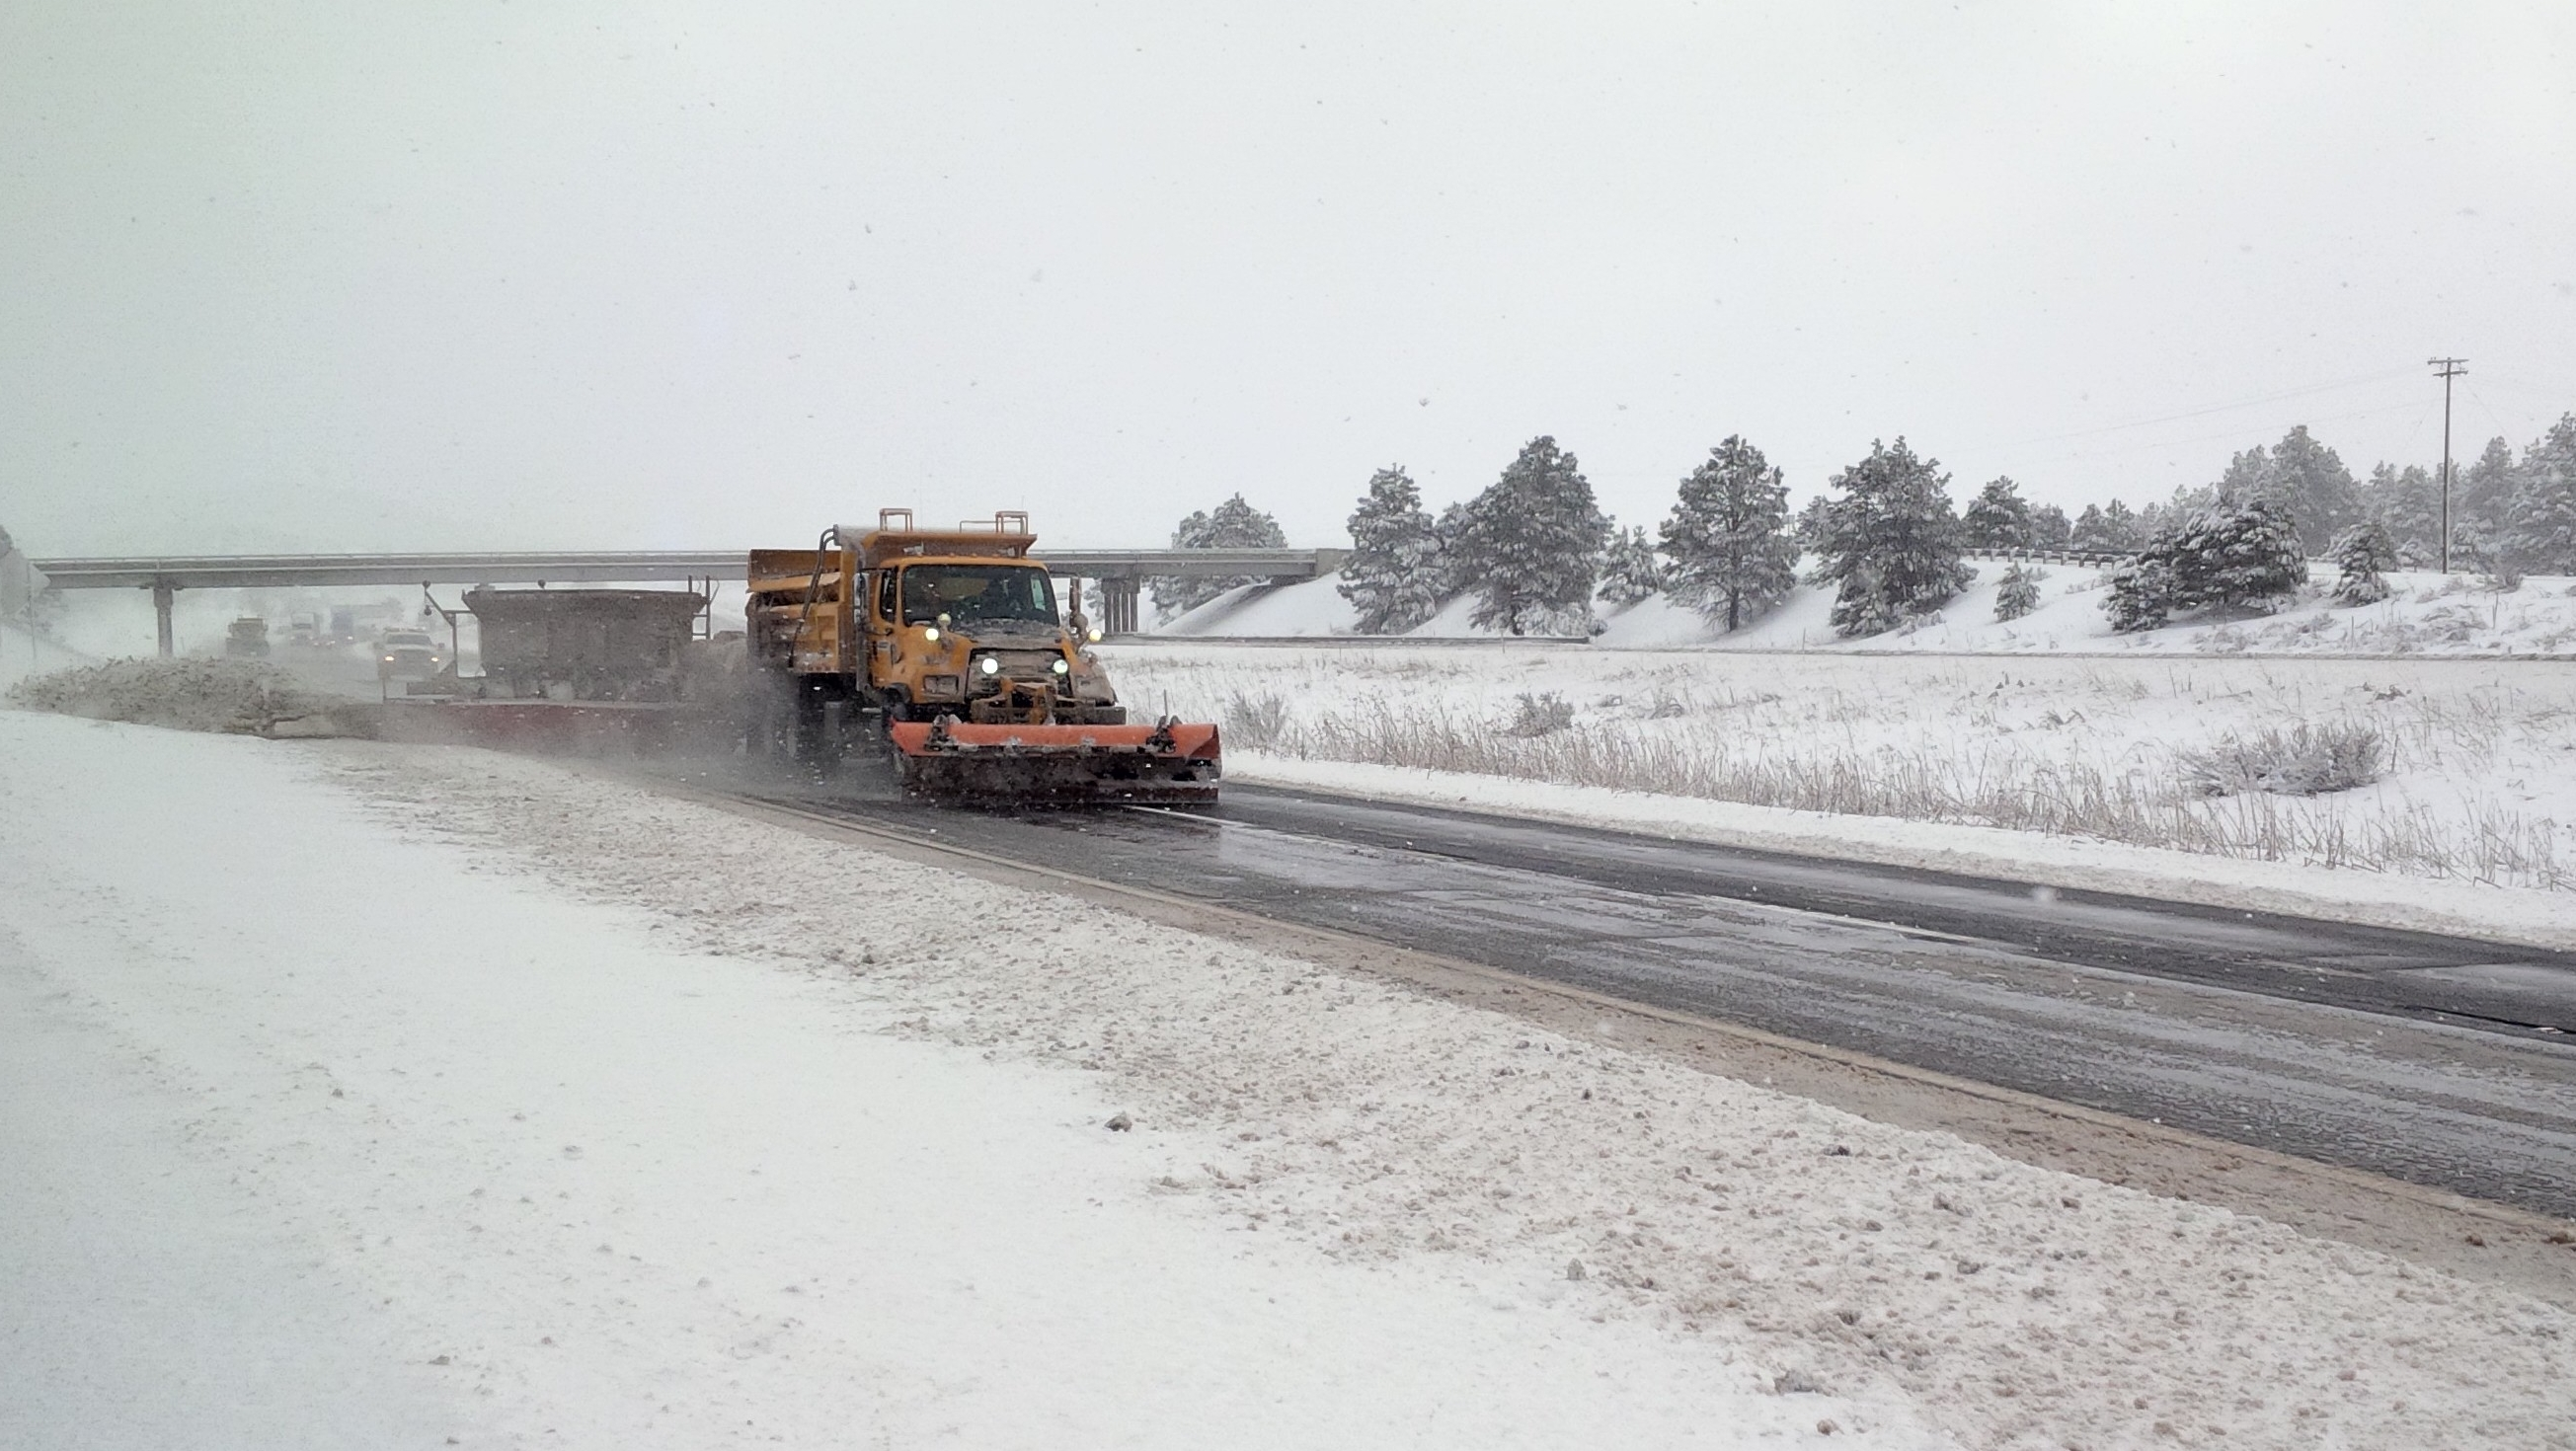 Arizona Department of Transportation TowPlow plows snow out of roadway